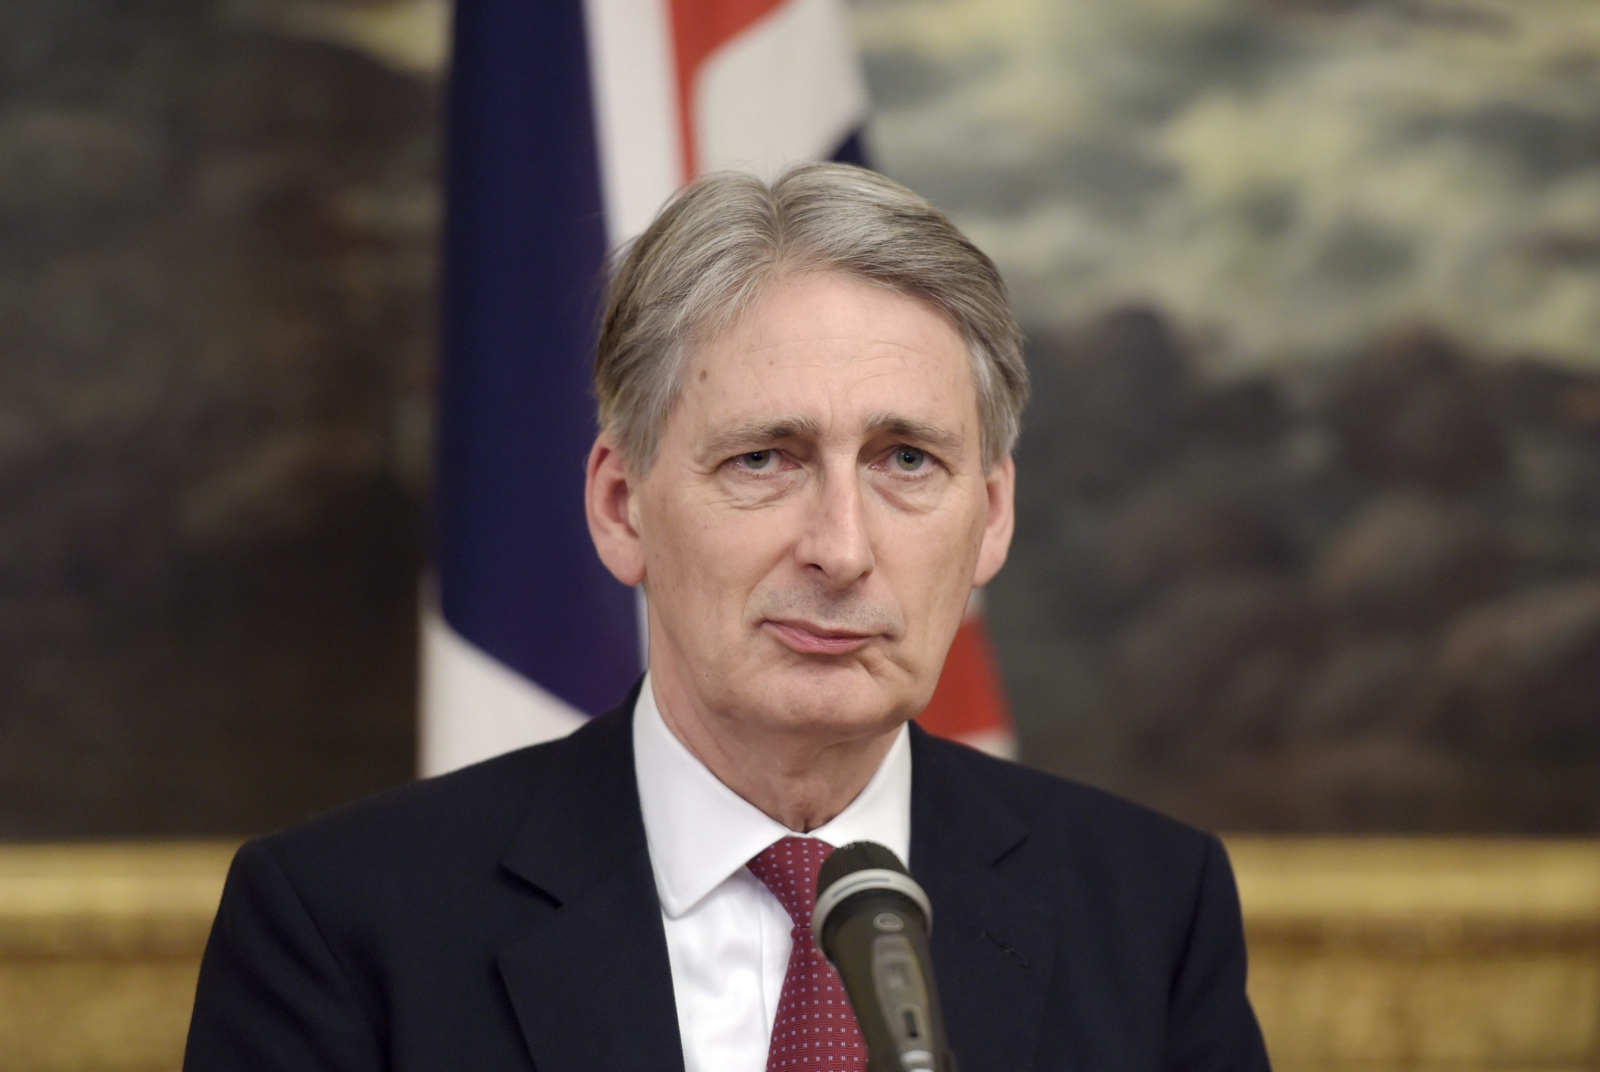 British Foreign Secretary Philip Hammond pauses as he speaks during a meeting with Finnish Foreign Minister Erkki Tuomioja (not pictured) in Helsinki, January 8, 2015